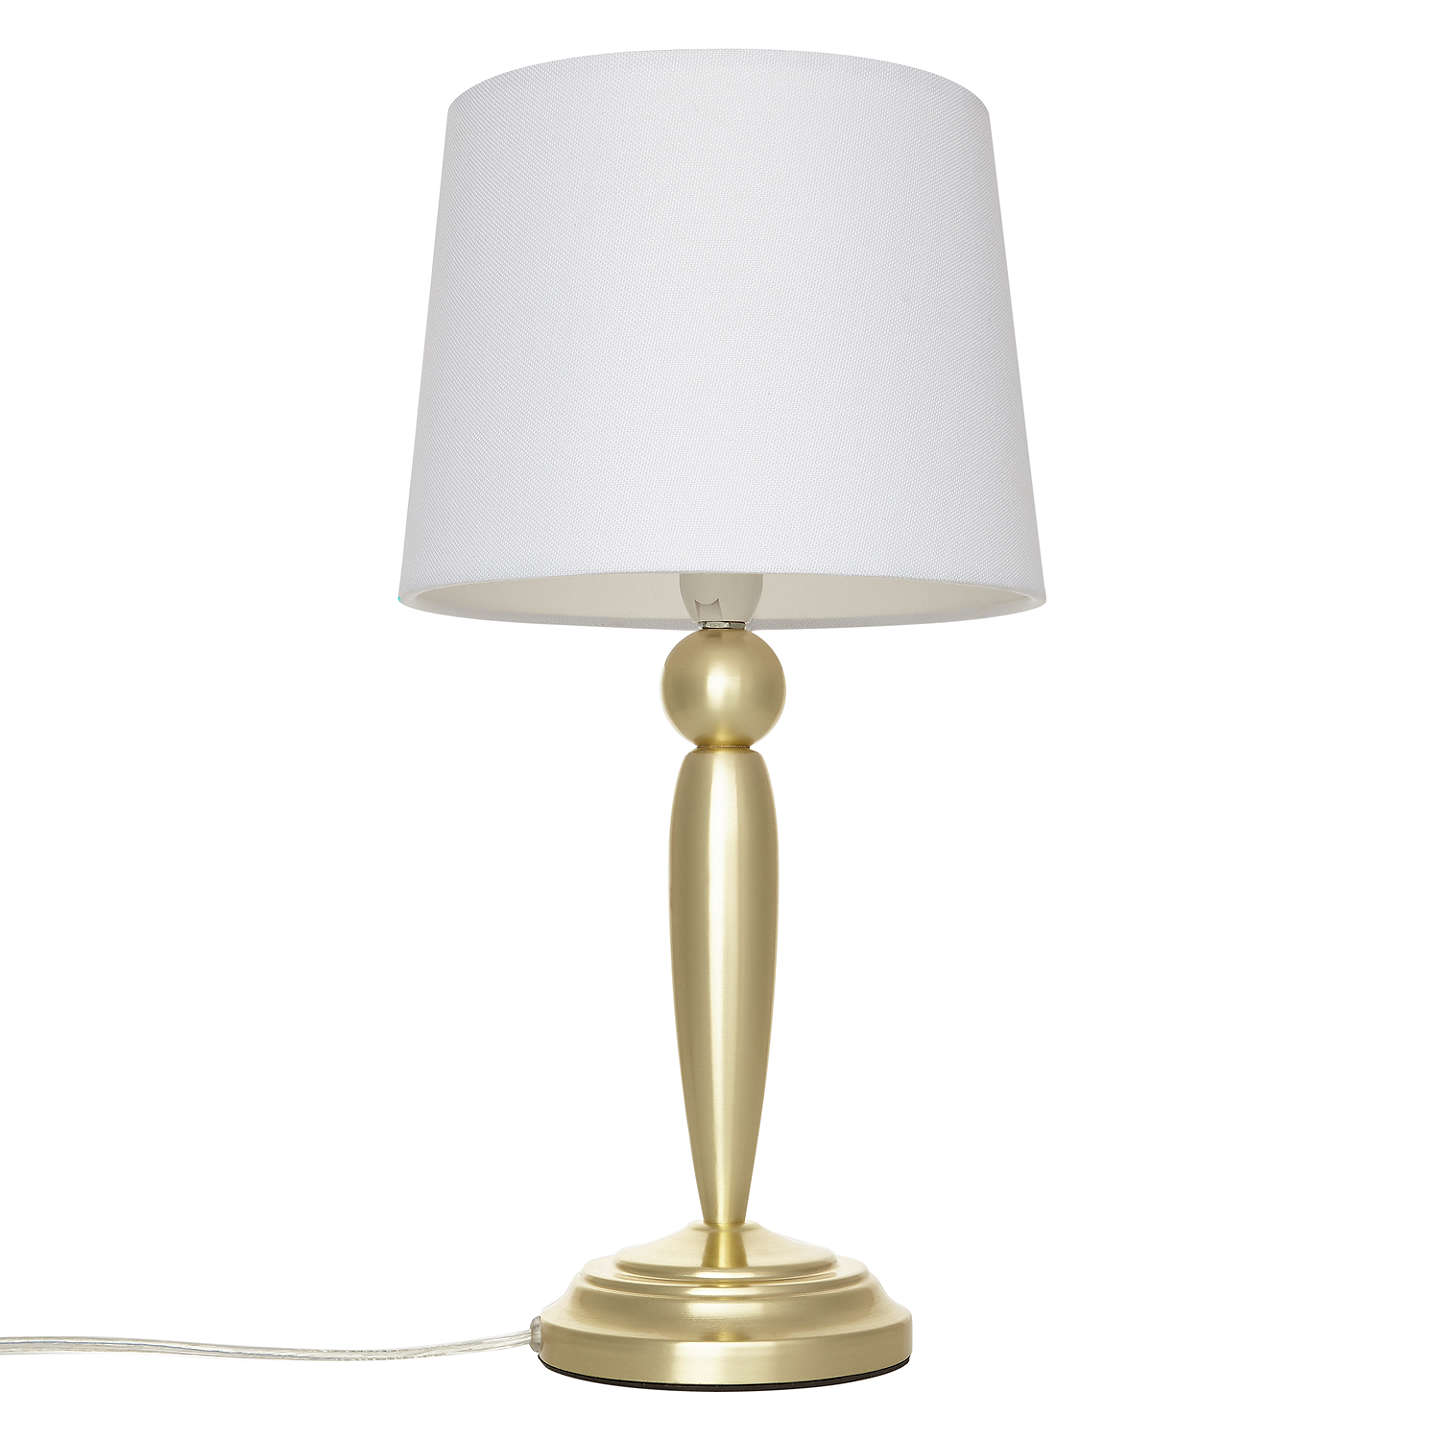 ... BuyJohn Lewis Andreya Touch Table Lamp, Antique Brass Online At  Johnlewis.com ...